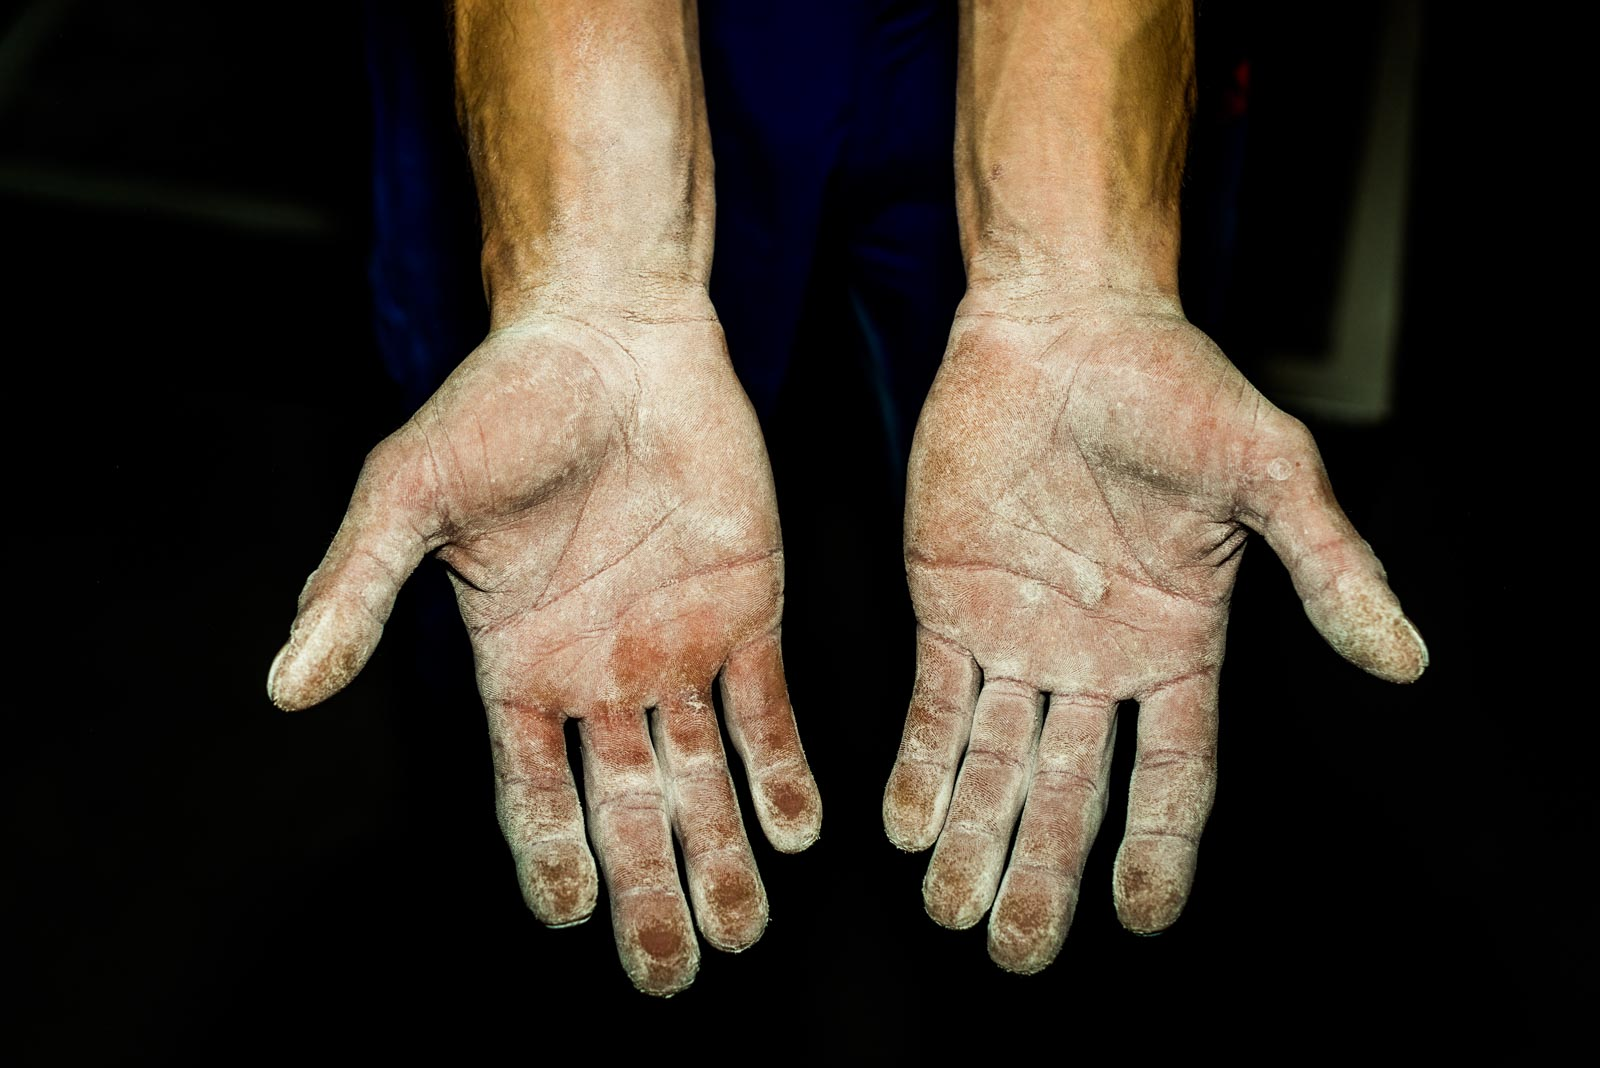 Hands of French climber Guillaume Glairon Mondet